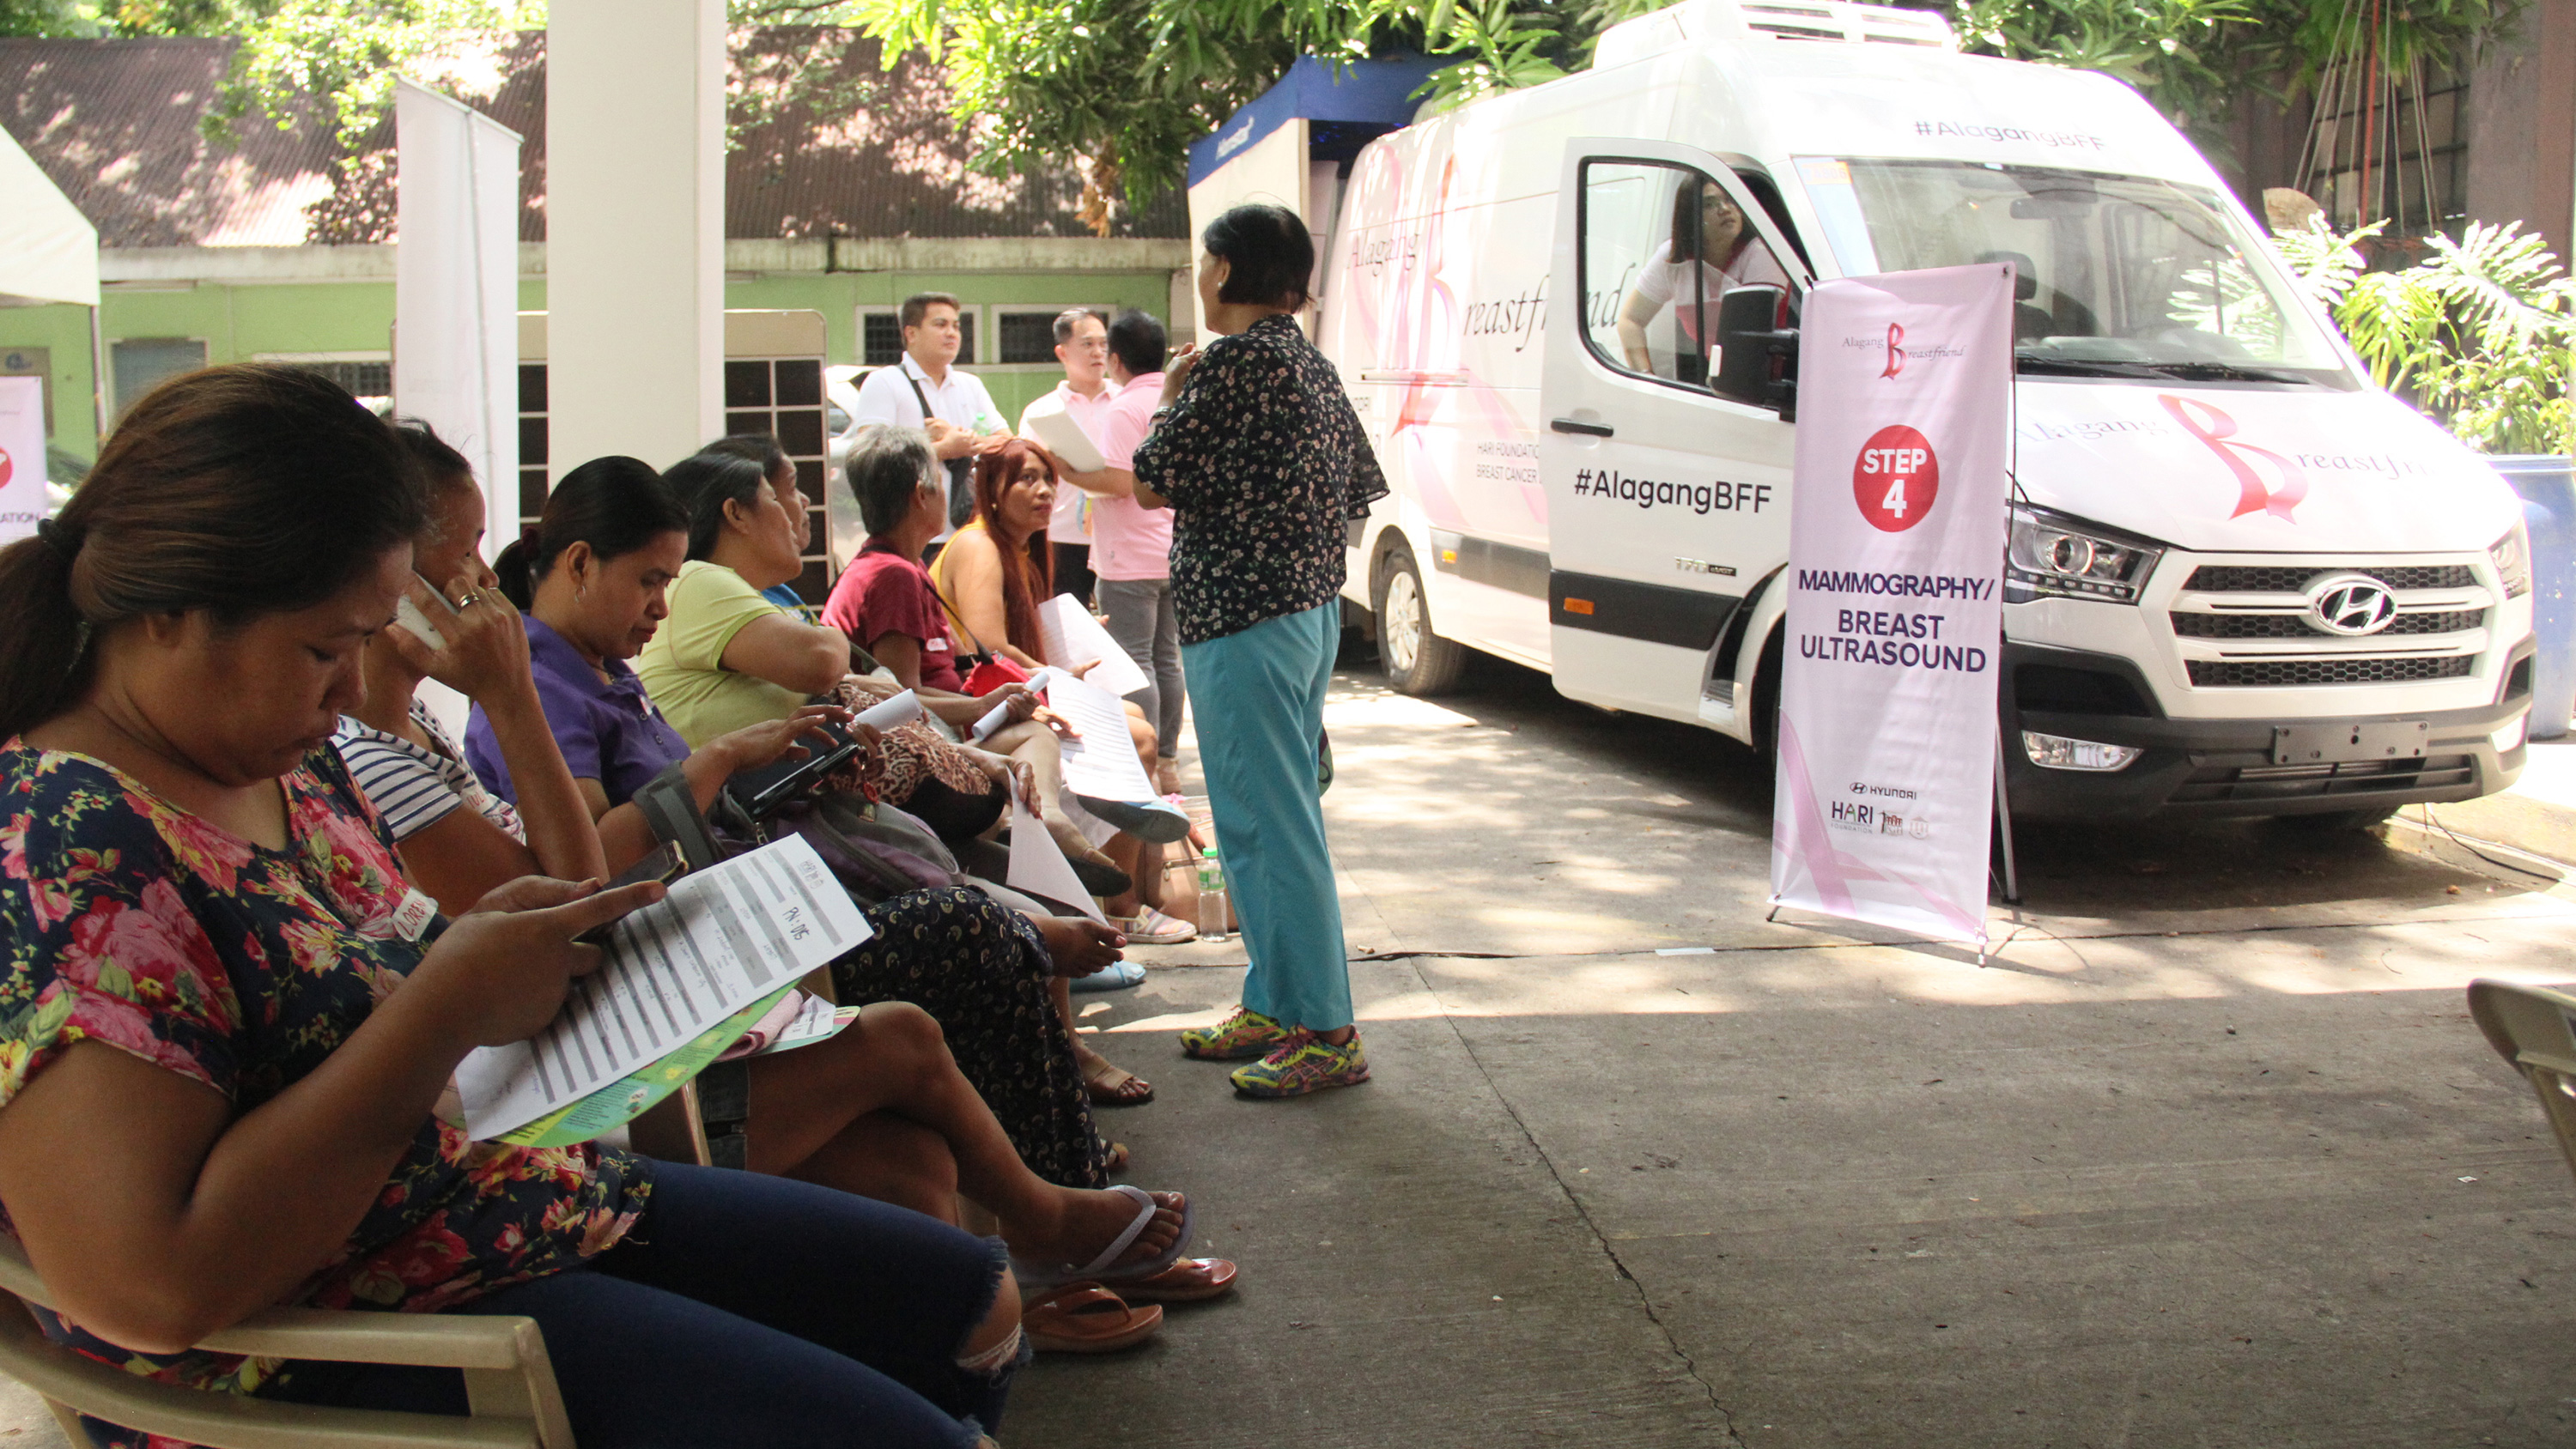 Kasama sa biyahe ng kaalaman, kalinga, at kalusugan. The Alagang Breastfriend Mobile Diagnostic Clinic, a customized Hyundai H350 luxury van, is the first of its kind in the country. Its maiden run was held at the UP-PGH grounds, offering free breast cancer screening to charity patients.